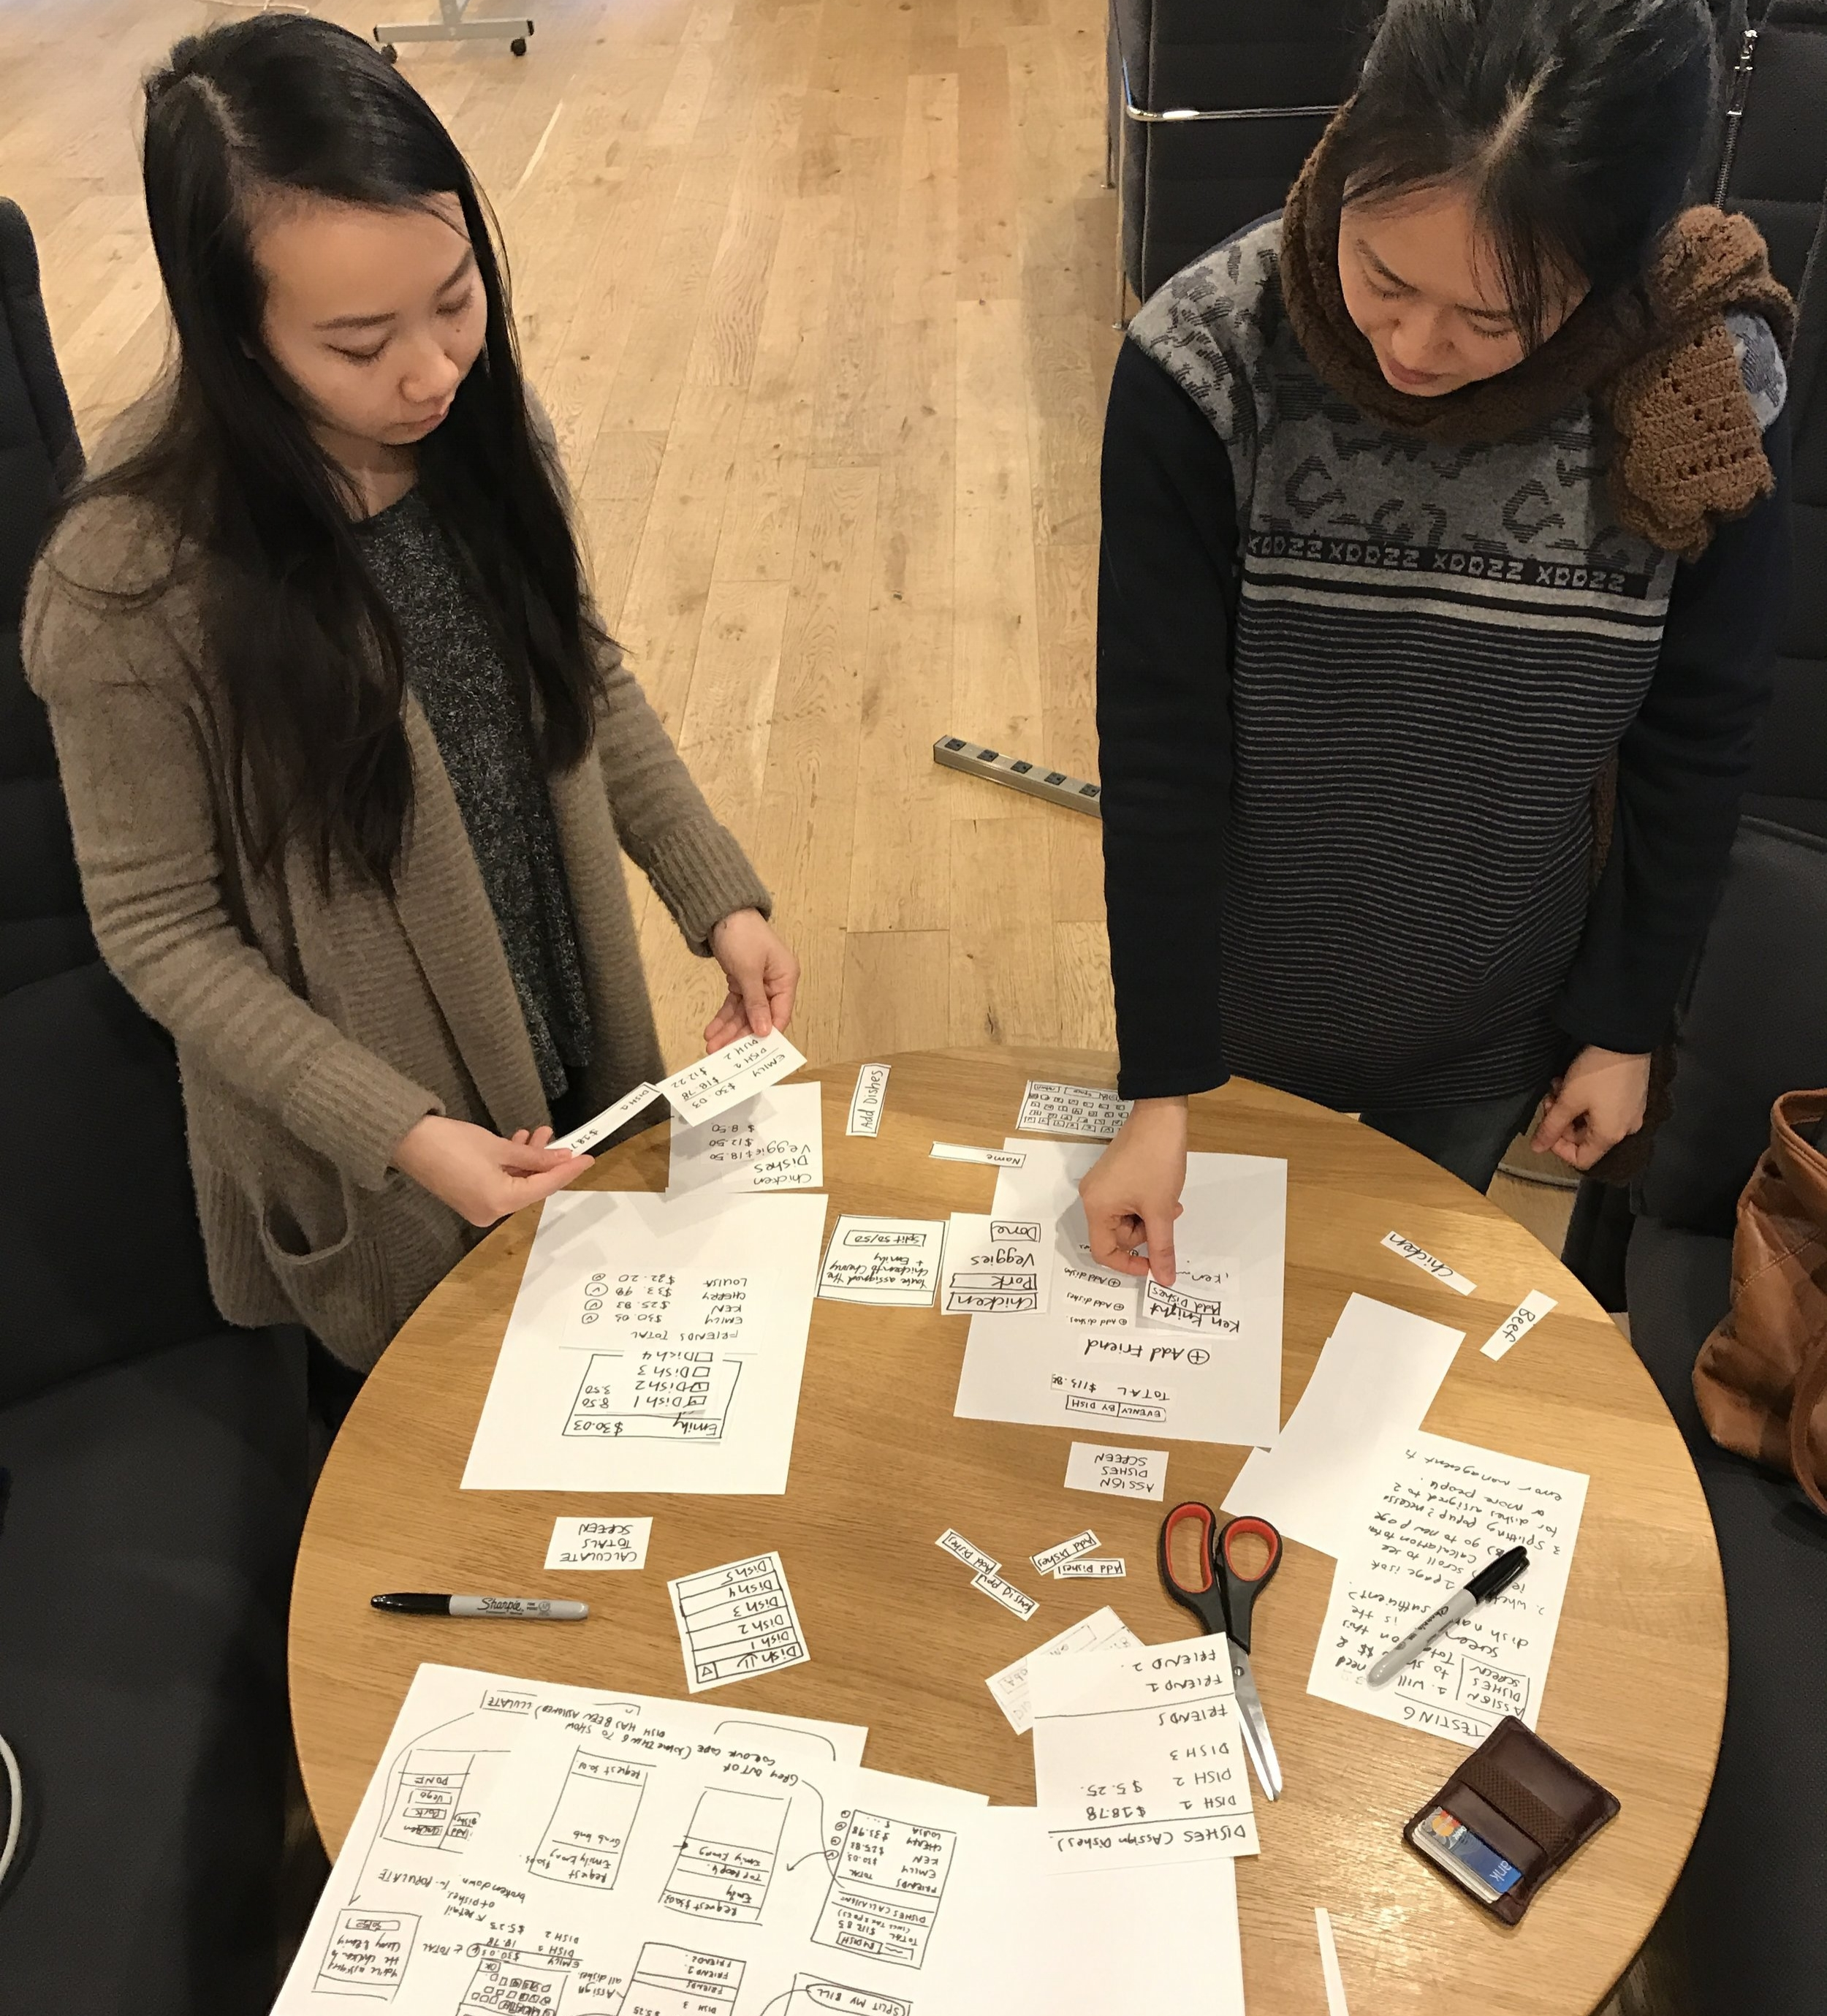 Interactive paper wireframing